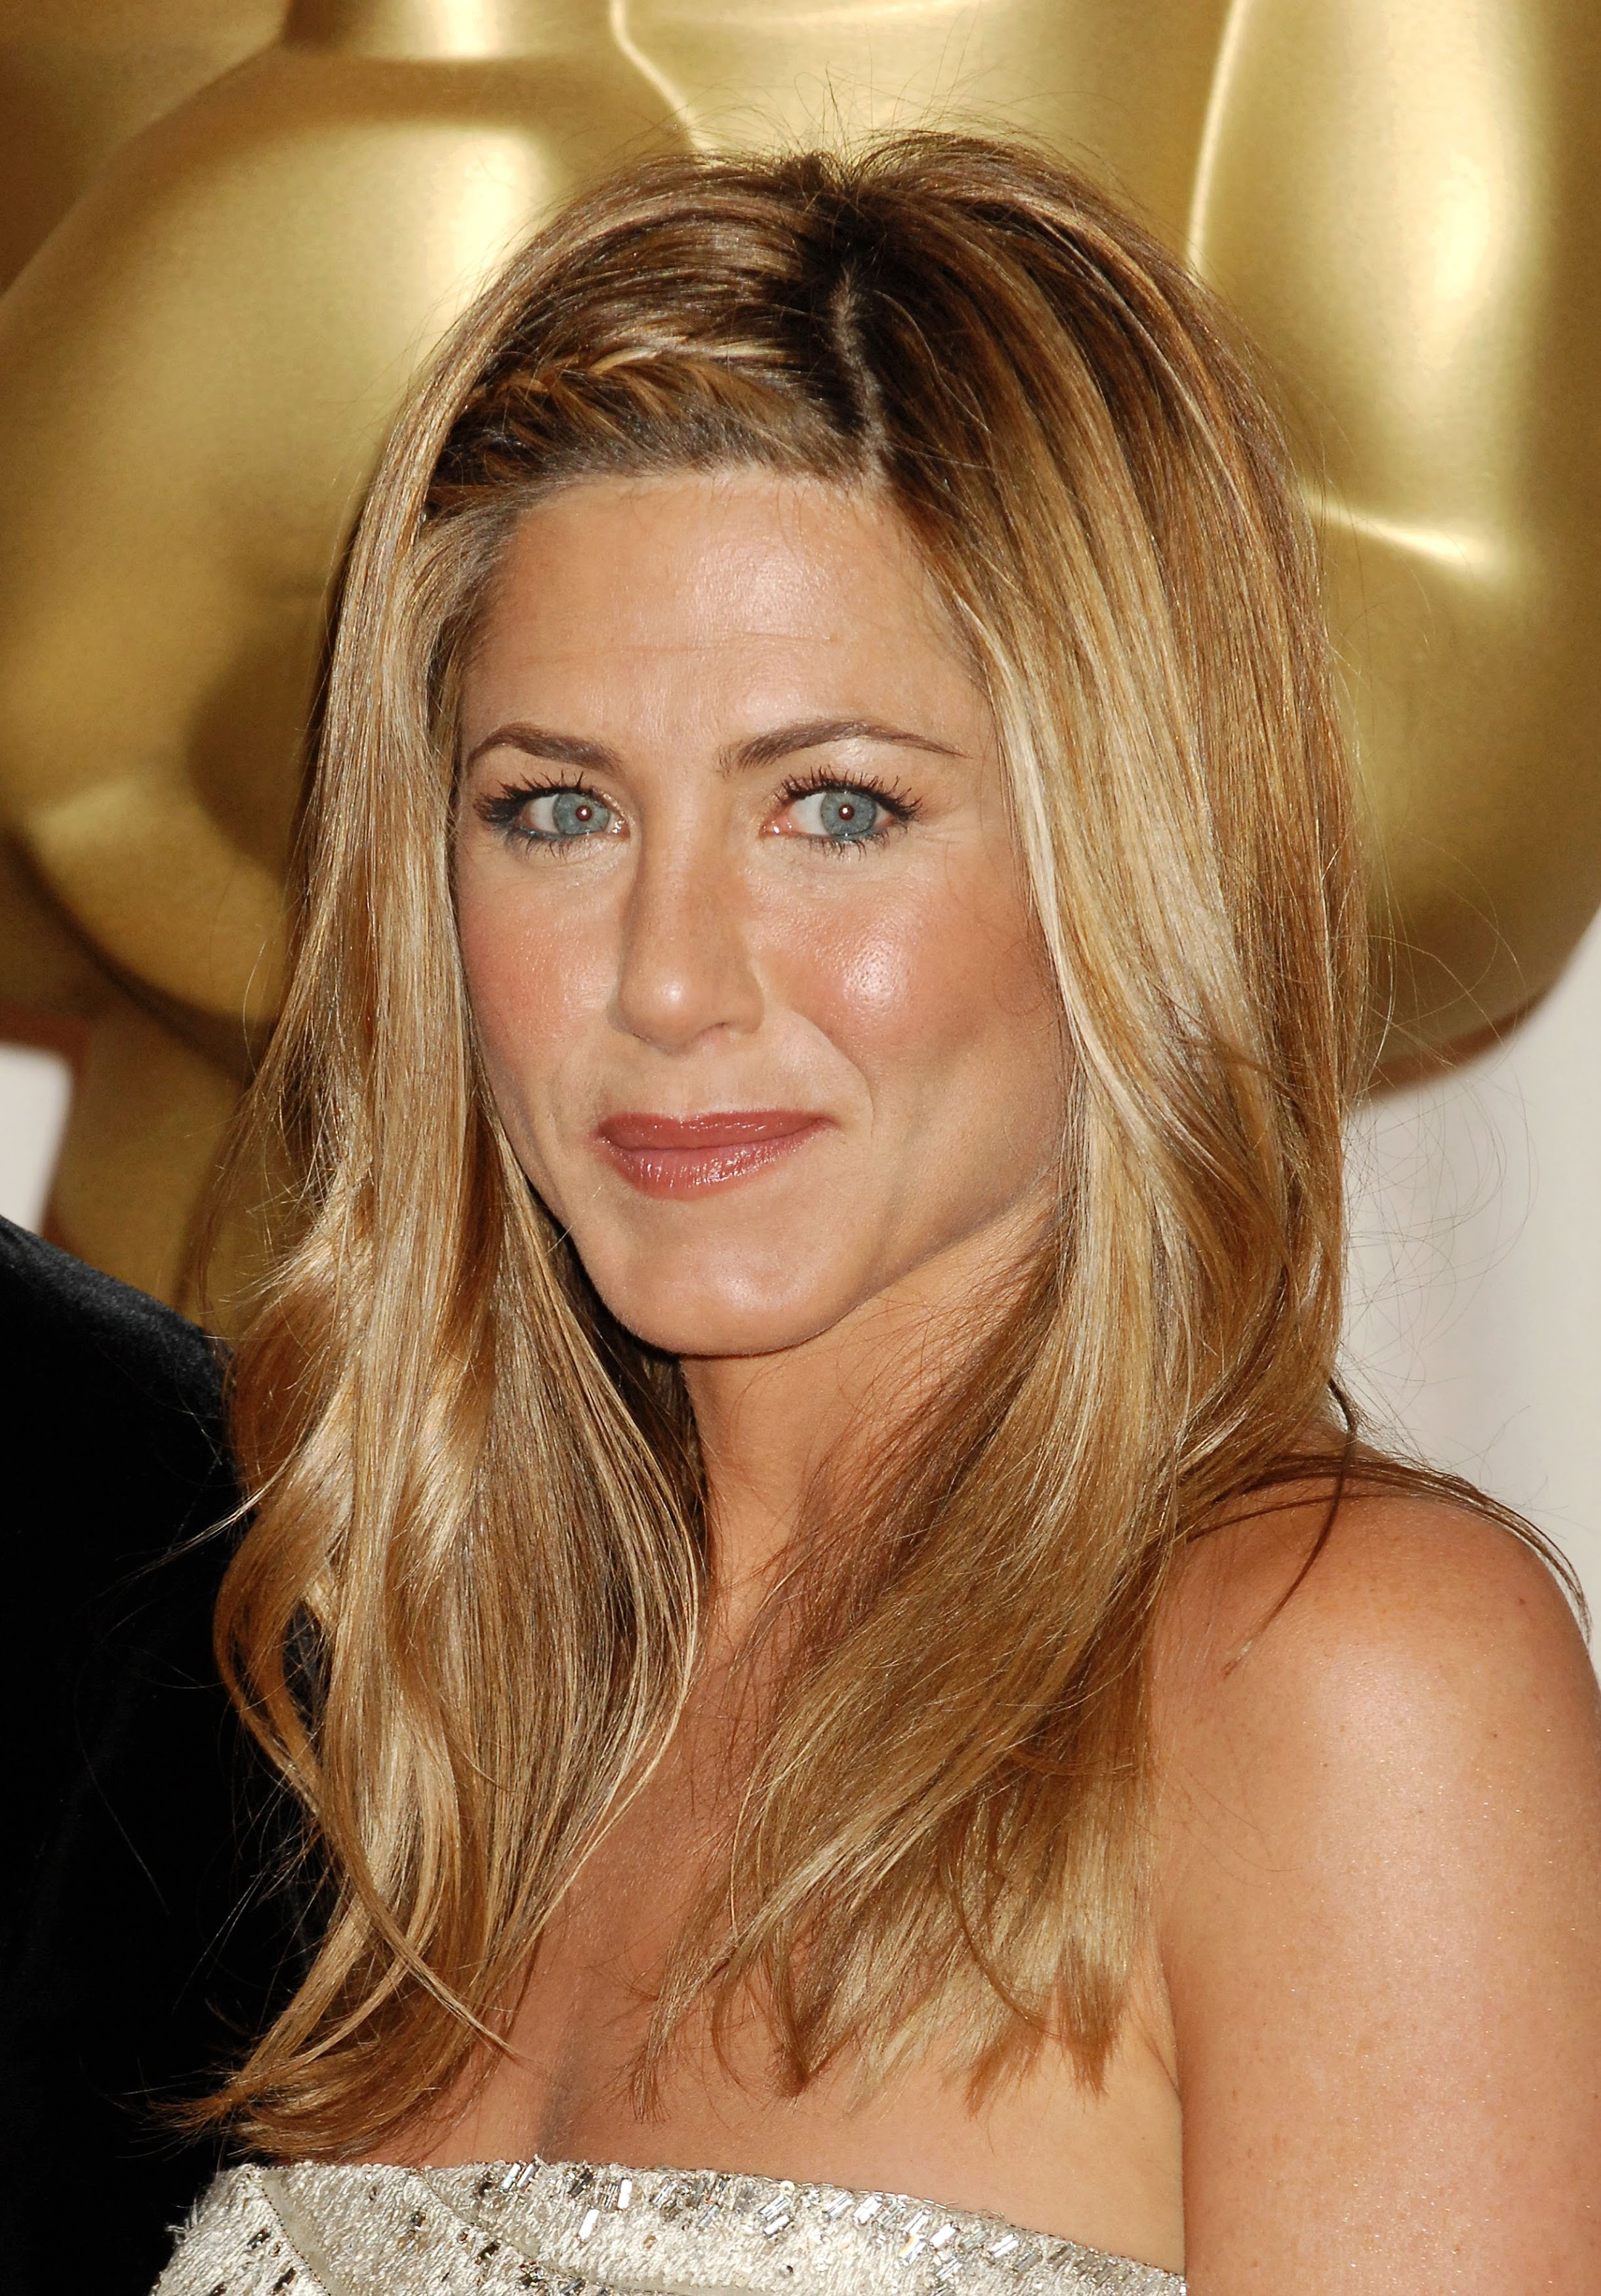 Jennifer Aniston 50 poses topless while revealing she is